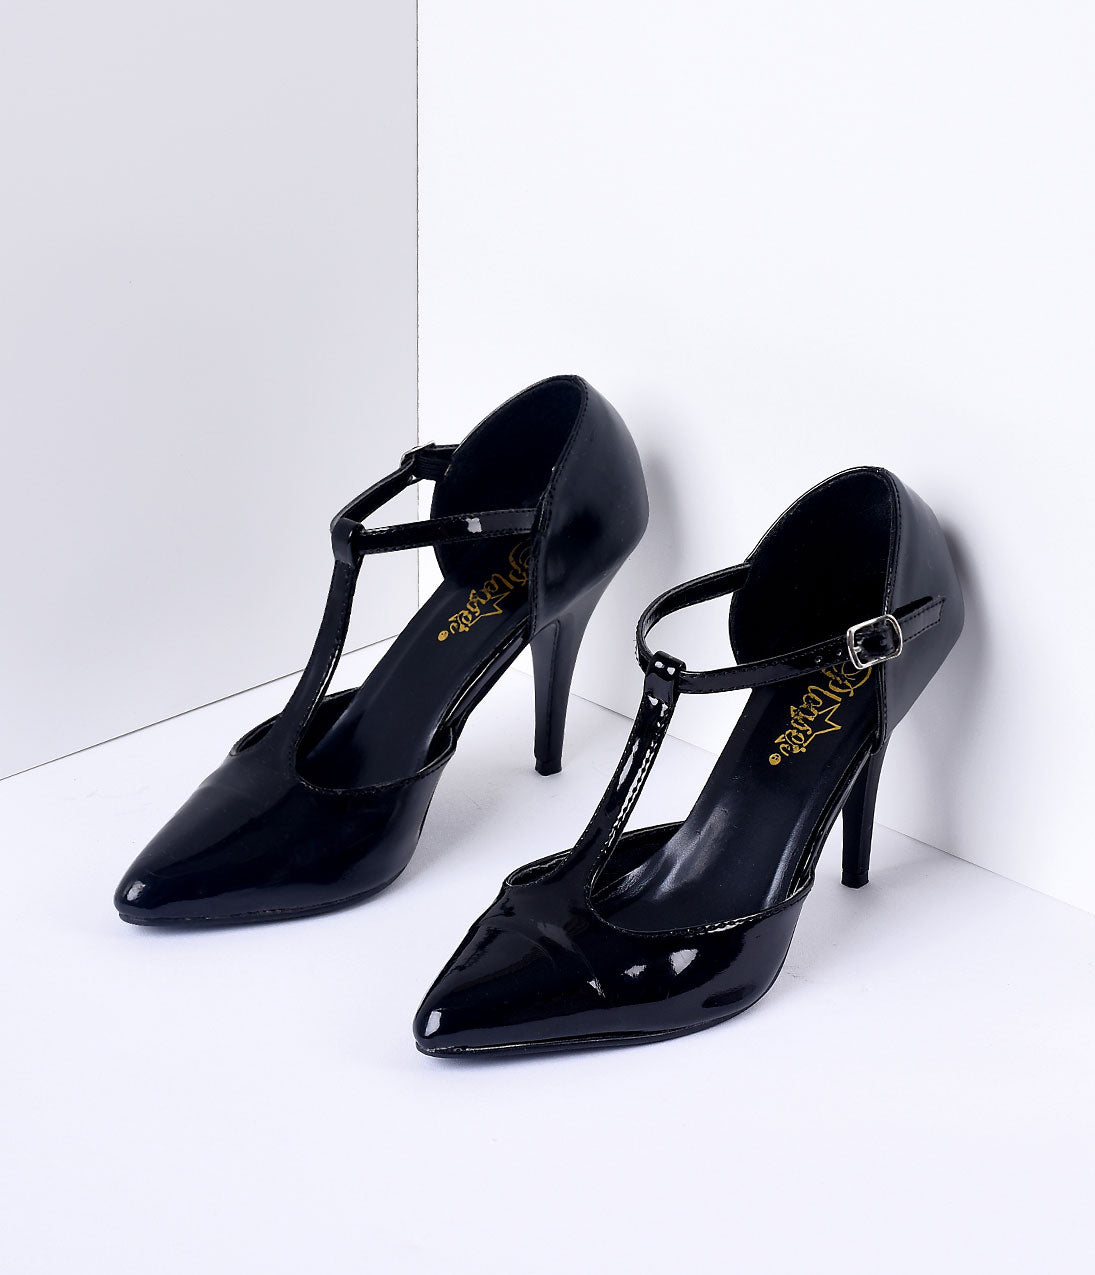 1950s Style Shoes | Heels, Flats, Saddle Shoes 1920S Style Black T-Strap Heels $68.00 AT vintagedancer.com